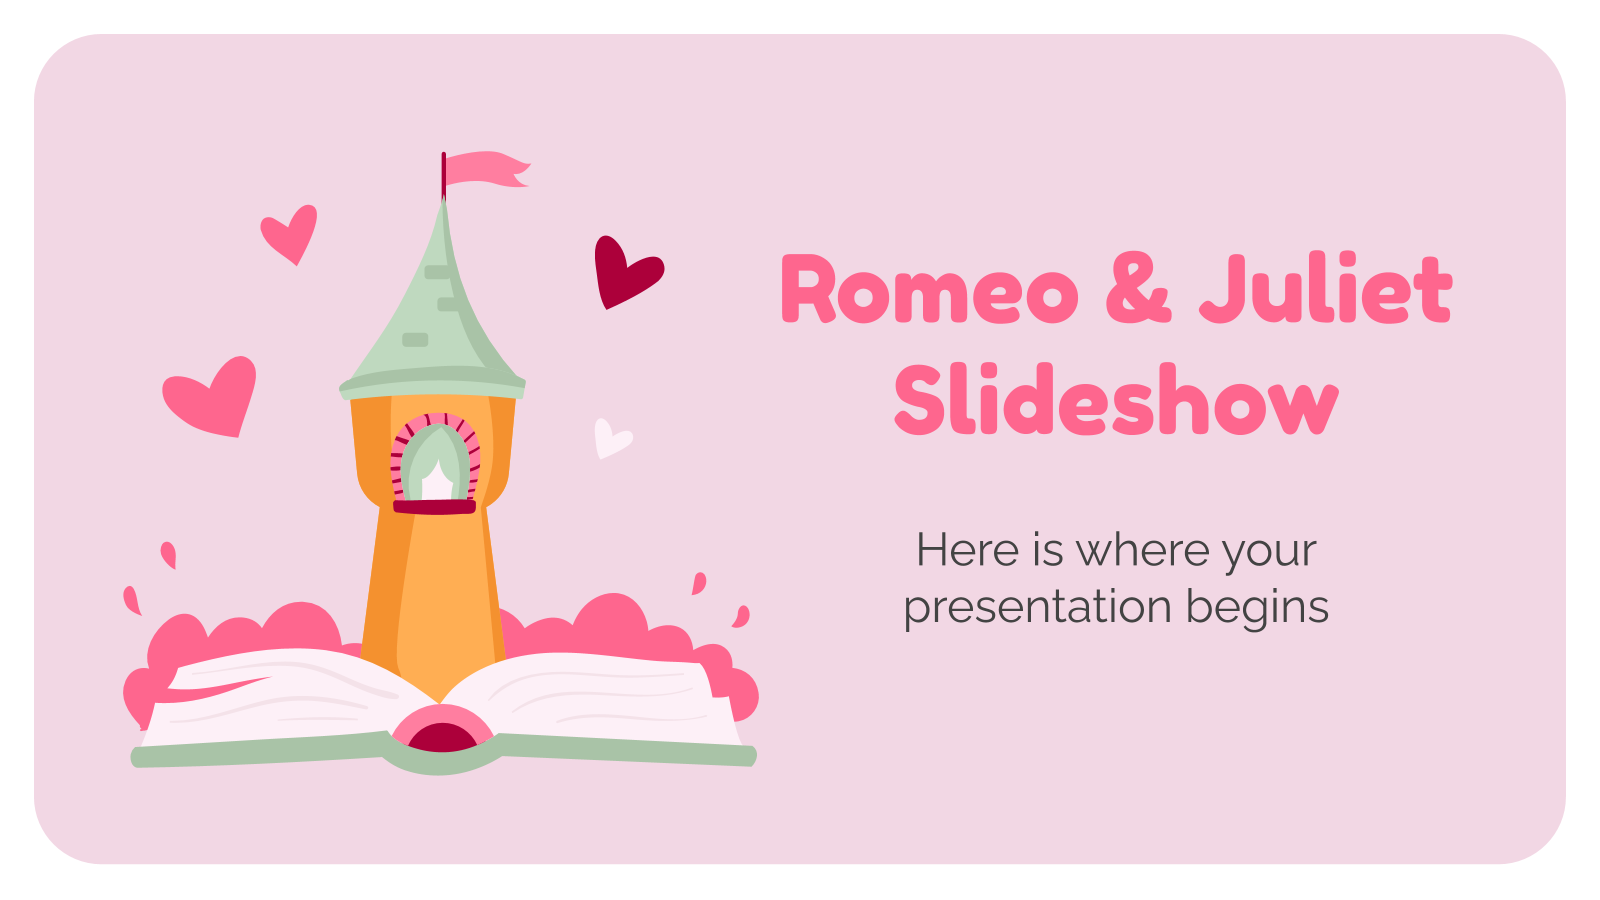 Romeo & Juliet Slideshow presentation template